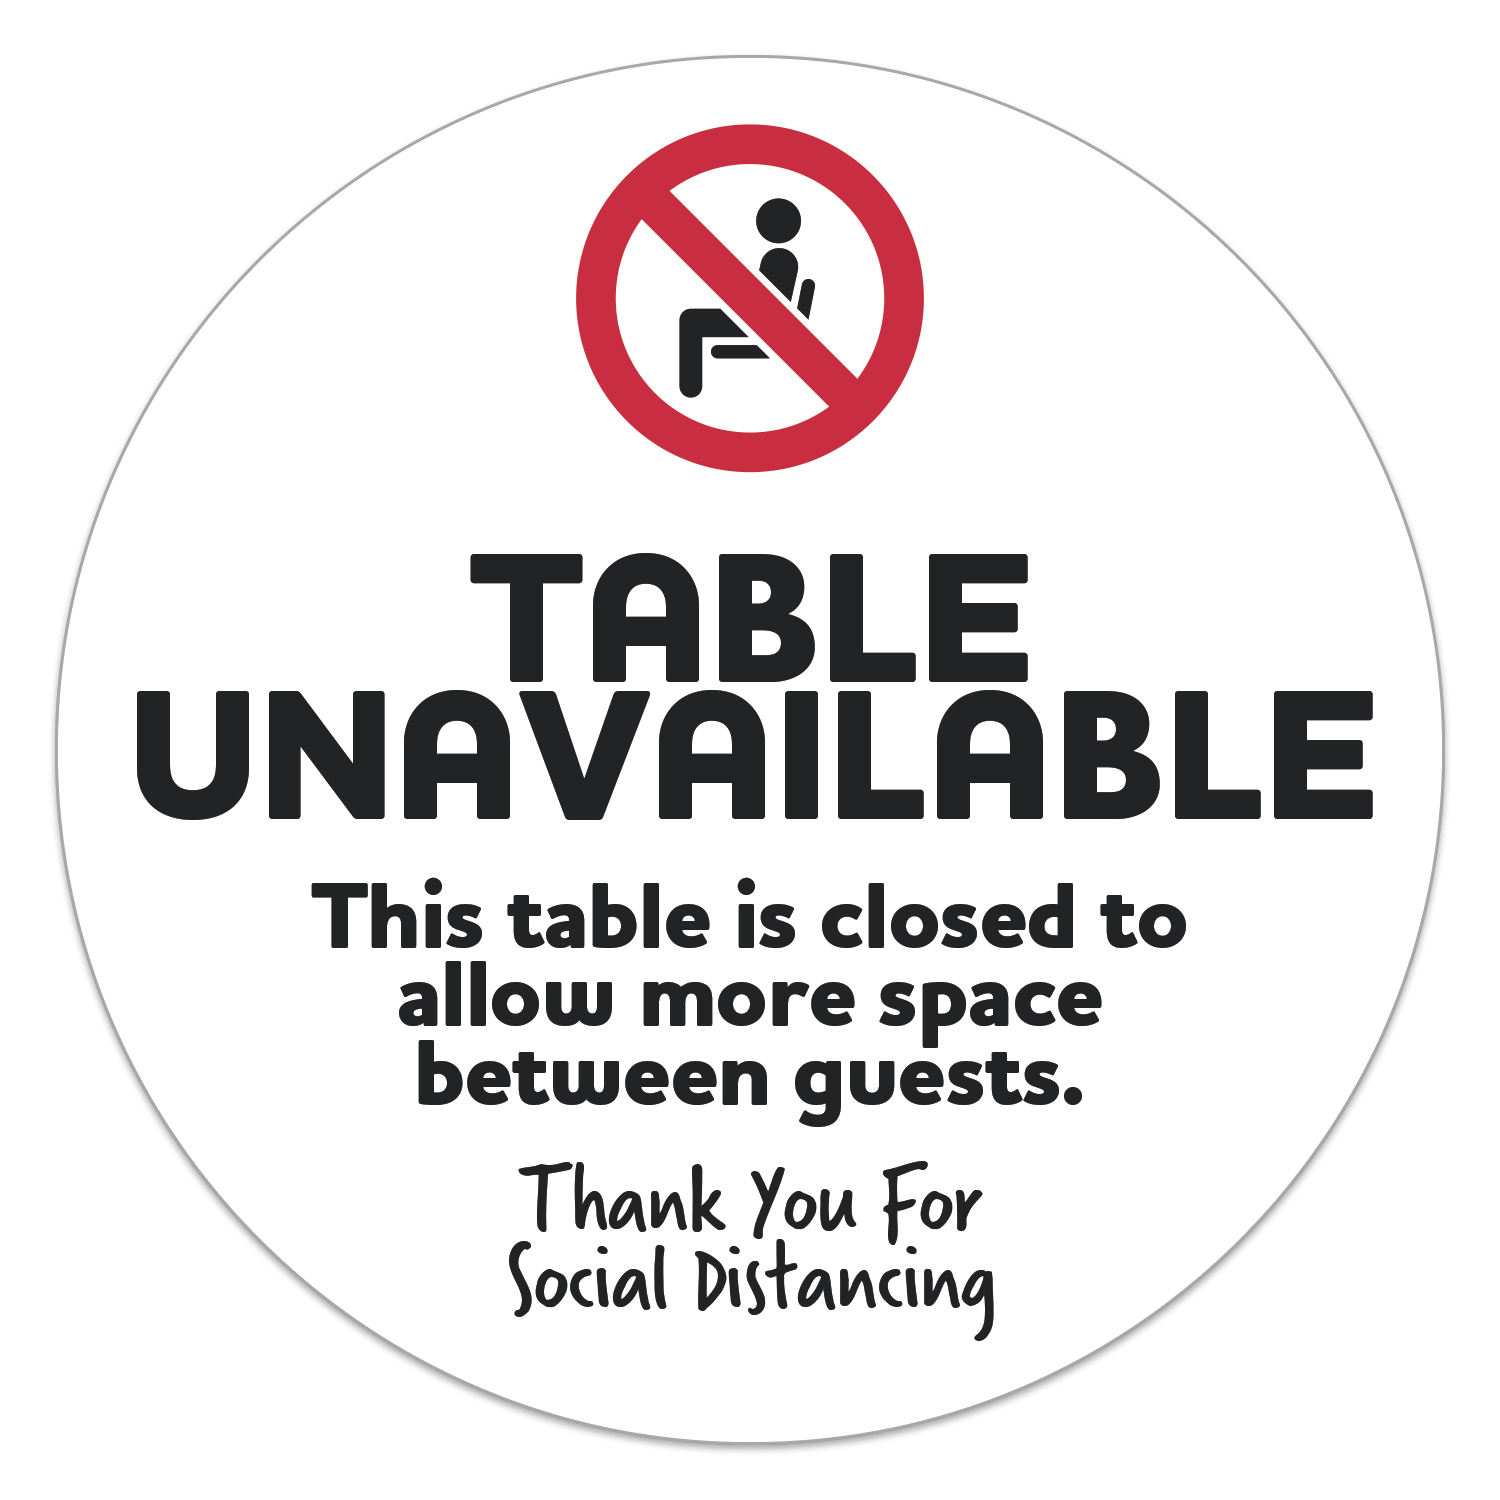 https://www.sswprinting.com/images/products_gallery_images/595701_Table-Unavailable_hi-res55.png